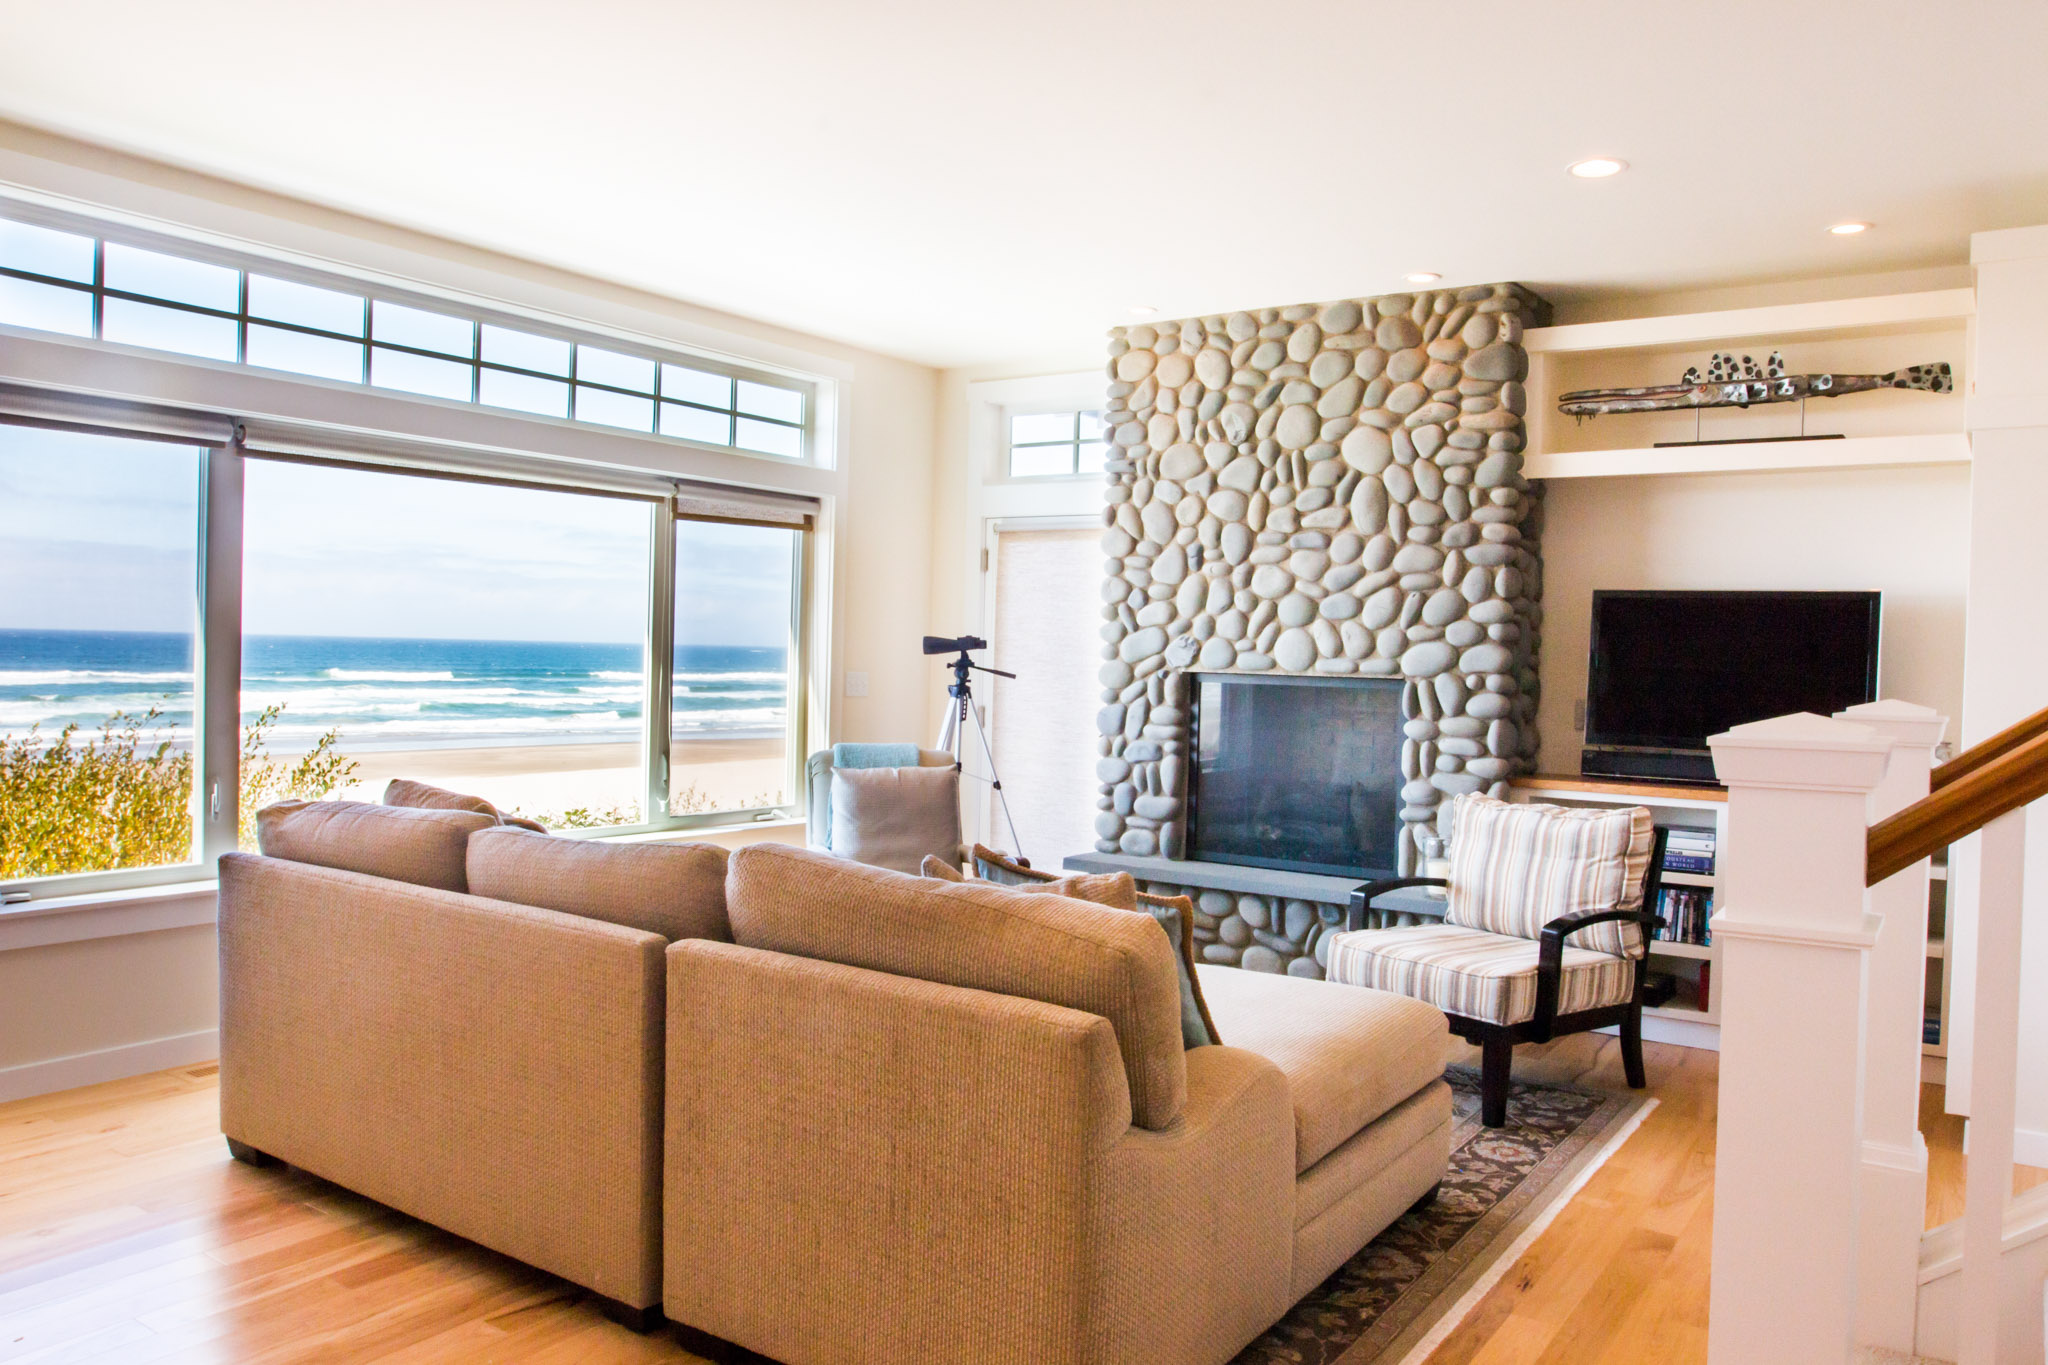 Ocean Front Beach House - JD Designs - Oregon Interior Design